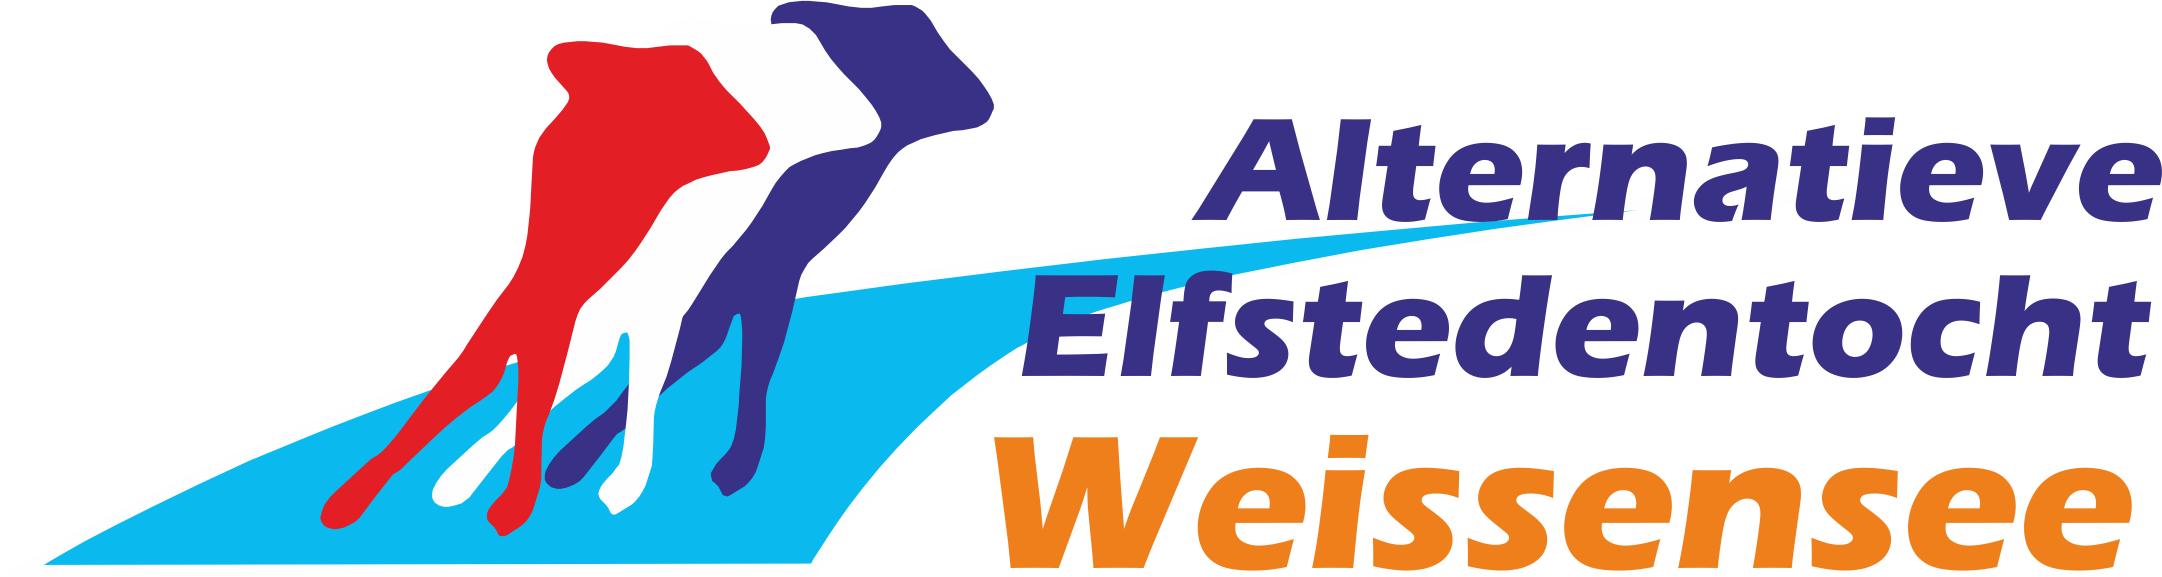 Alternatieve Elfstedentocht Weissensee